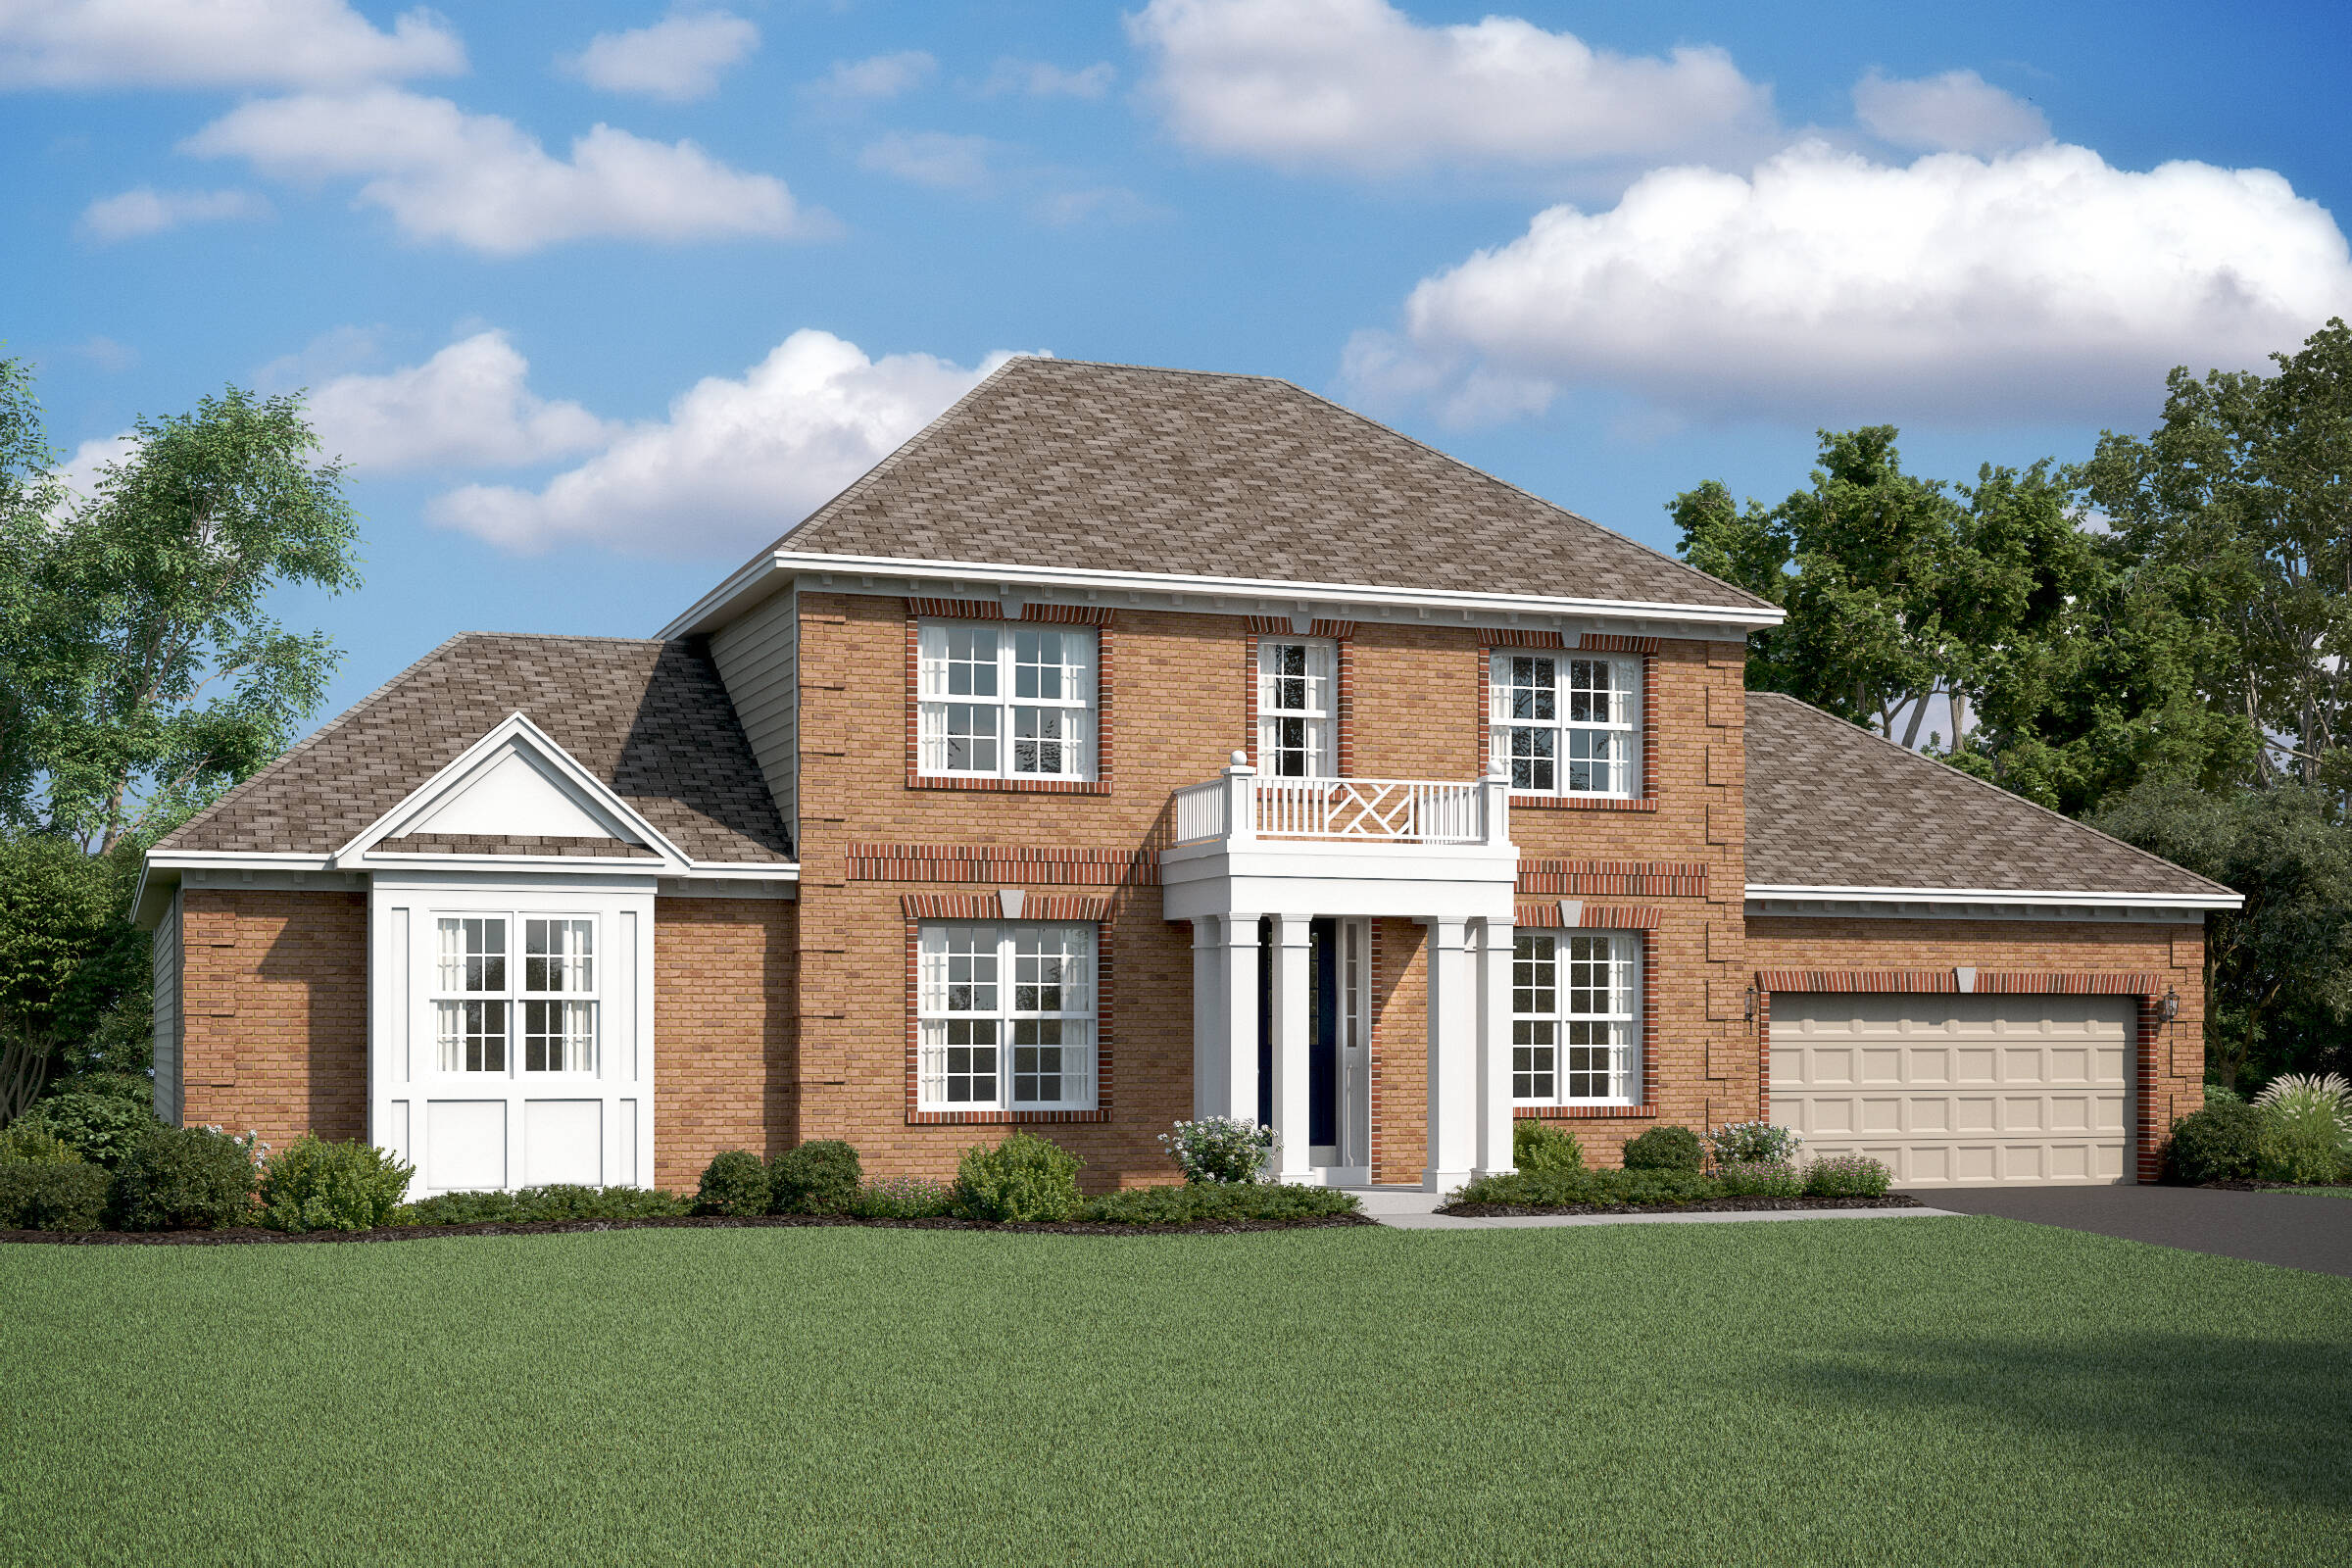 san michele jb new homes at reserves at leeland station